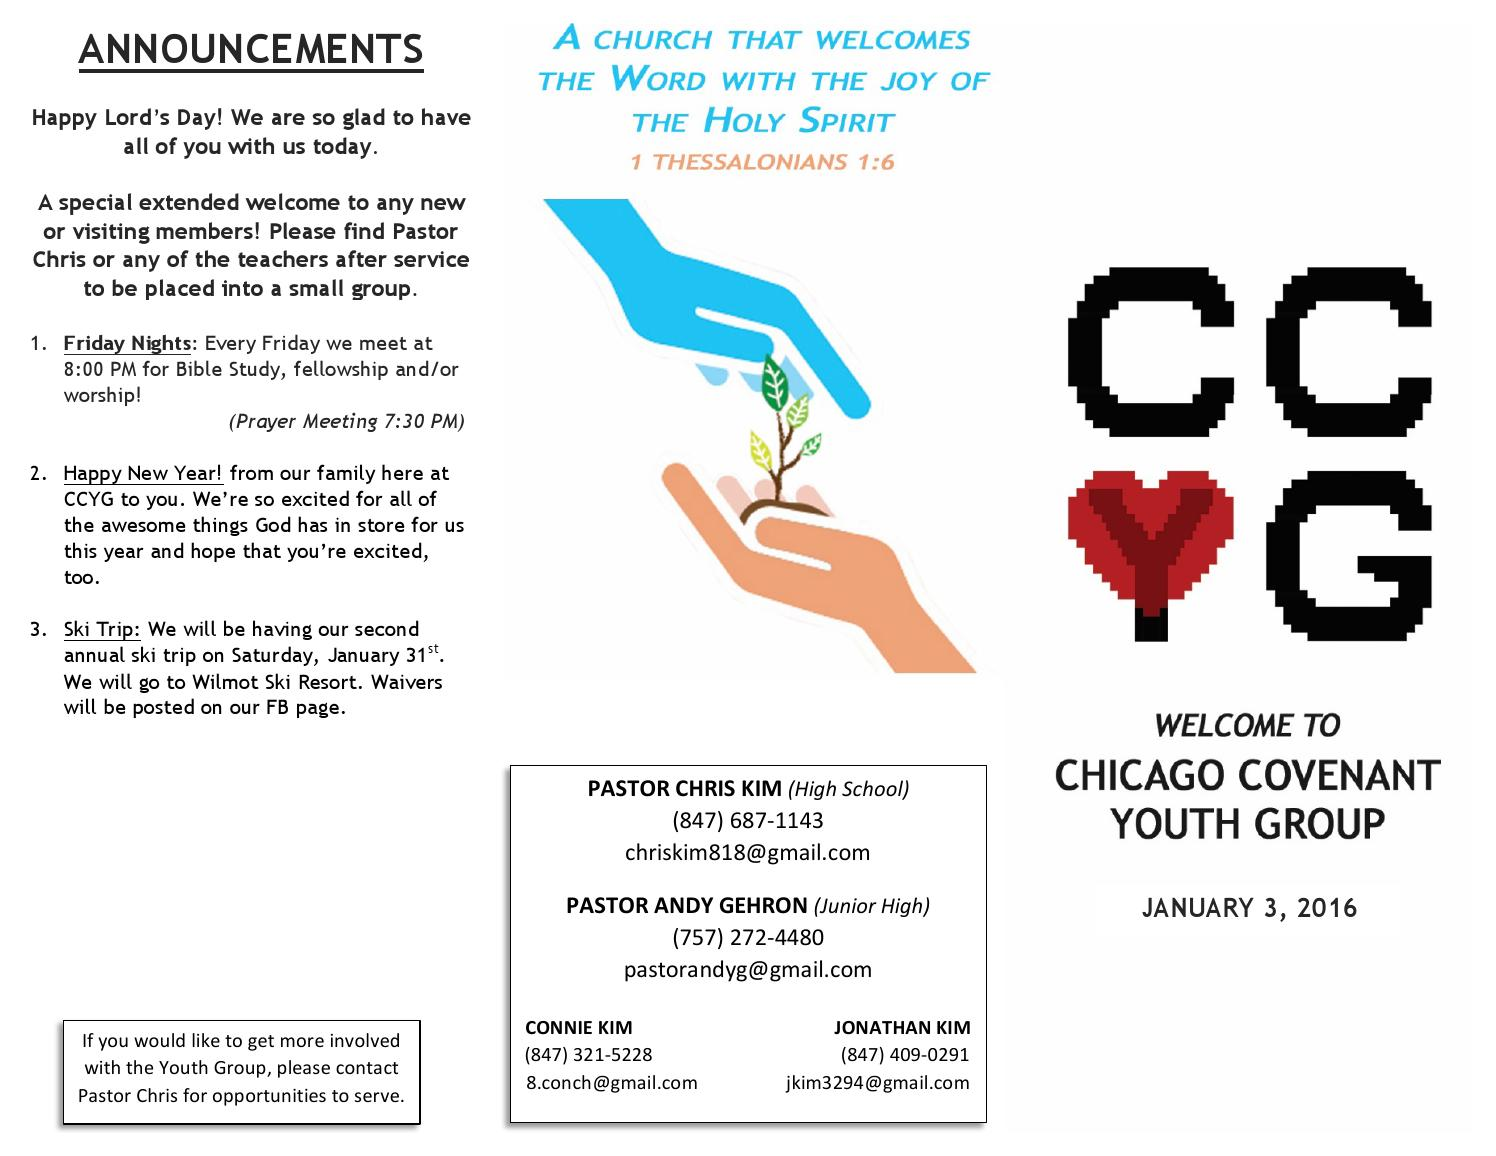 Ccyg 2016 01 03 by chicago covenant Church - issuu